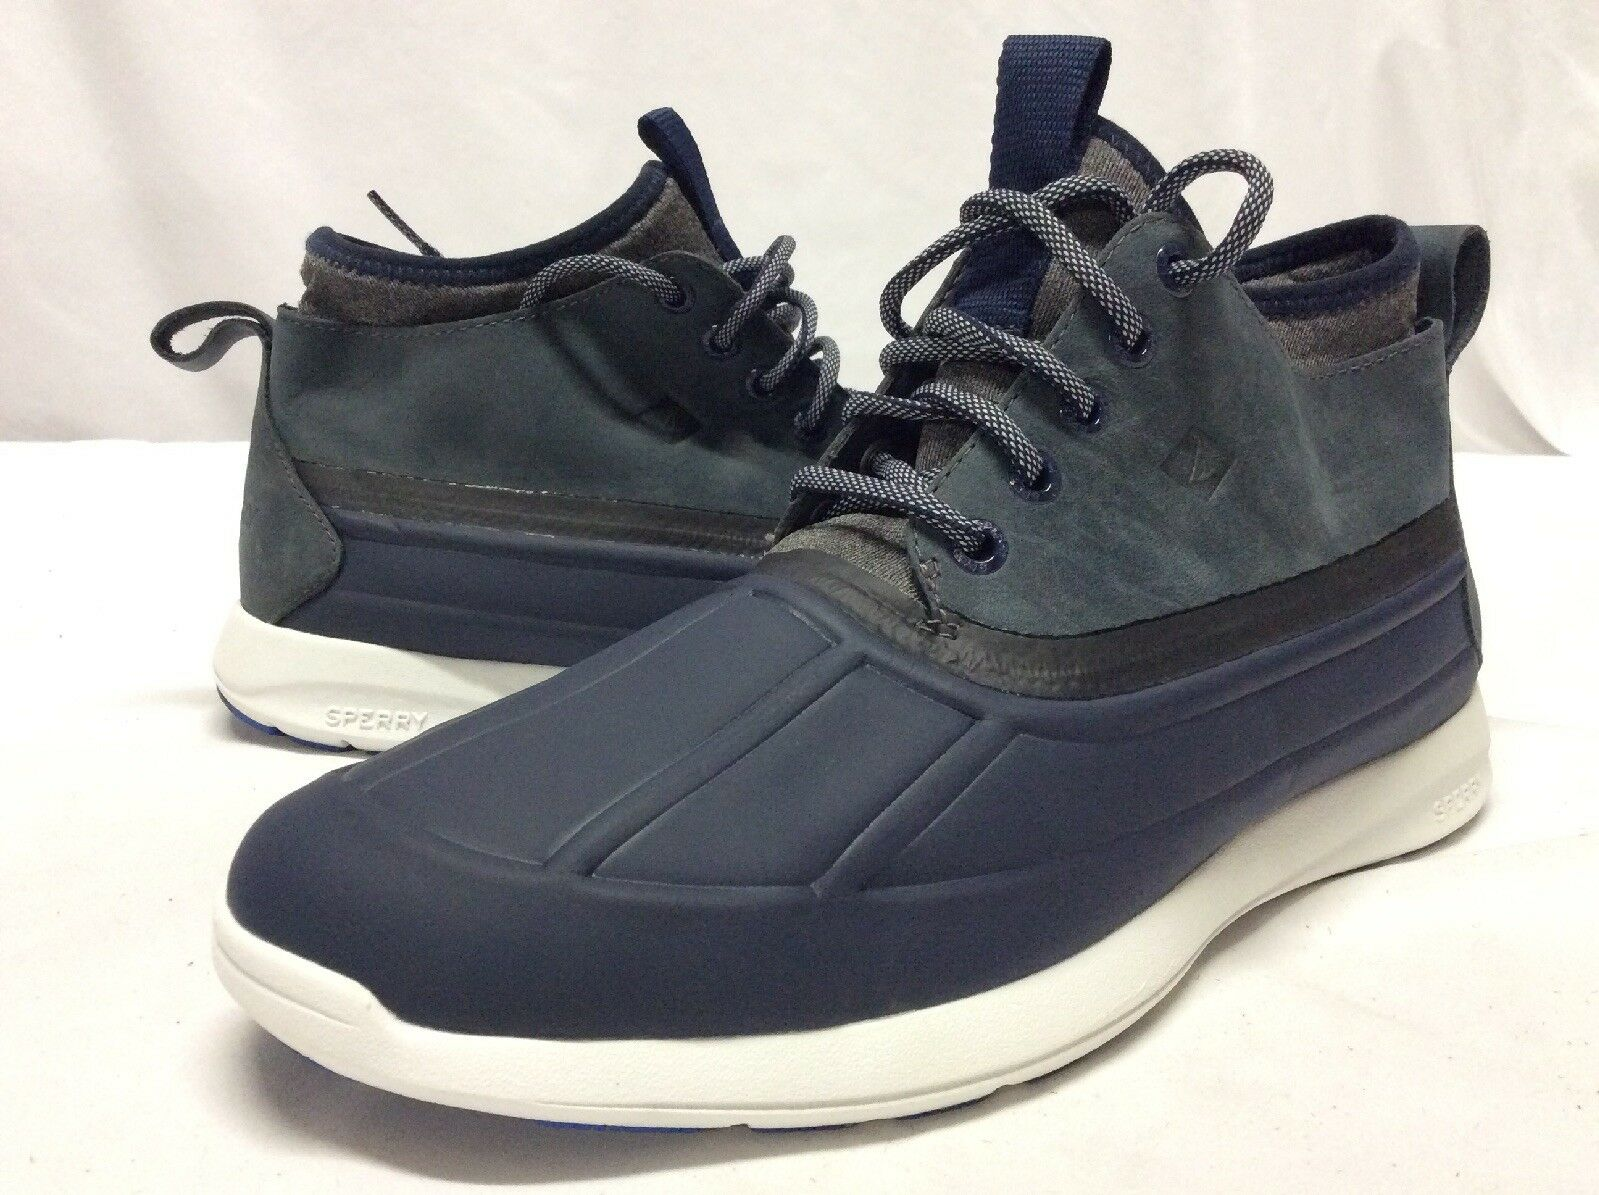 Sperry T Sider  Rightrich Men's SOJOURN DUCK CHUKKA Boots, Navy, Size 9, Eur 42